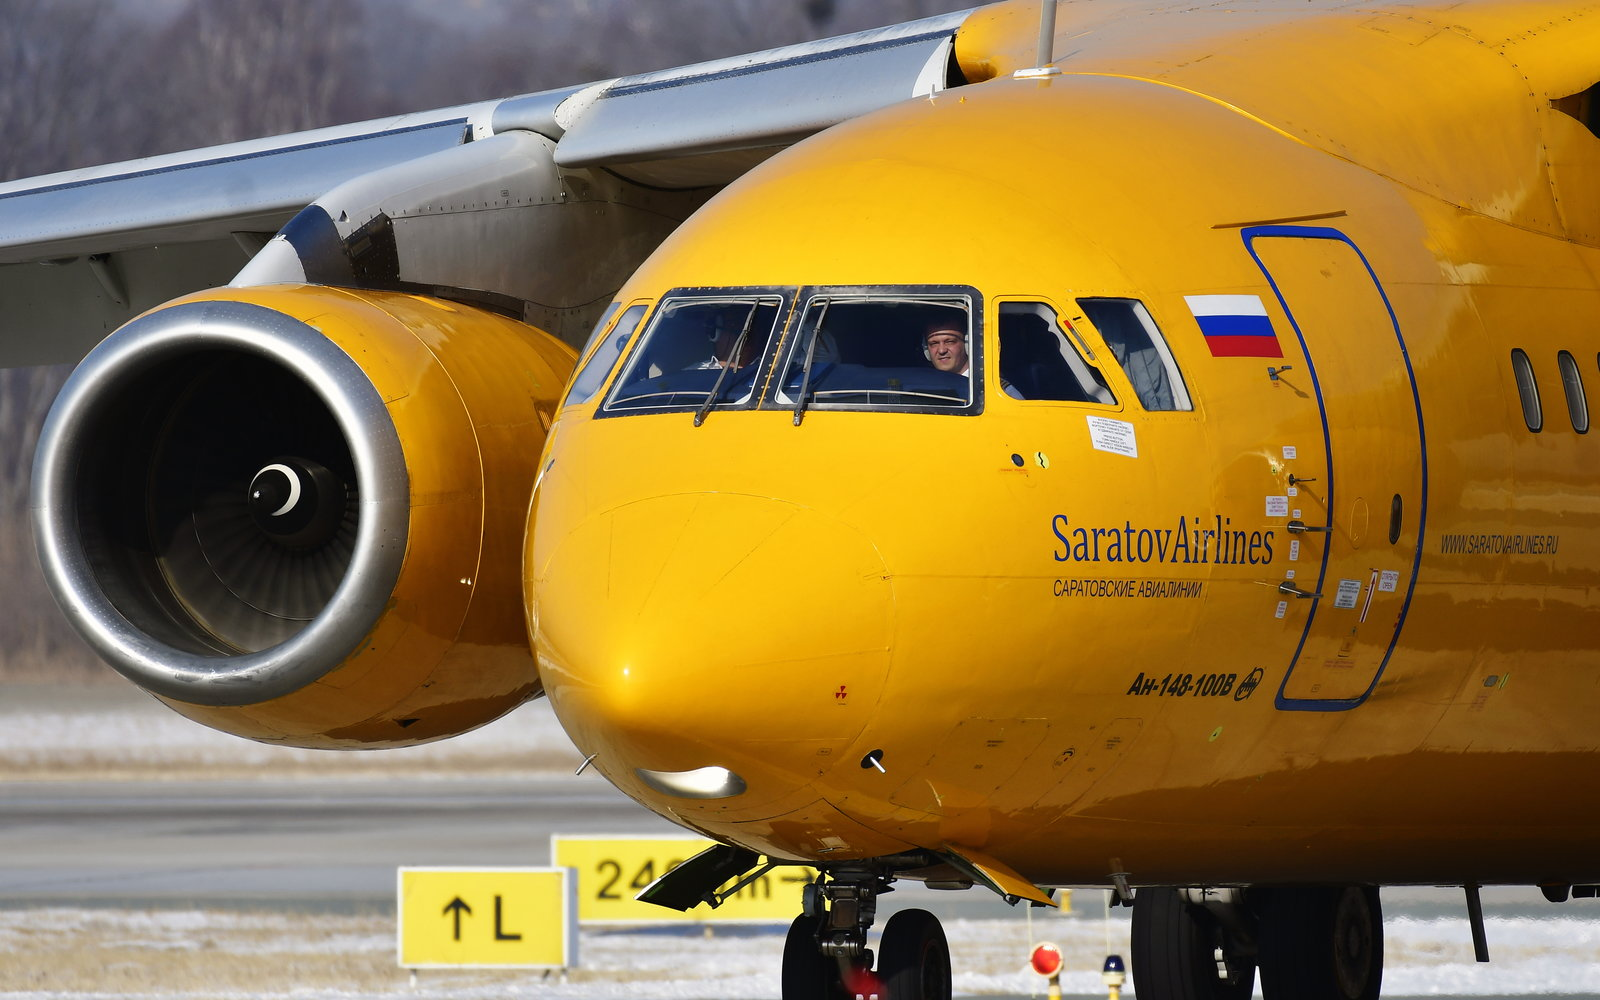 Saratov Airlines yellow airplane